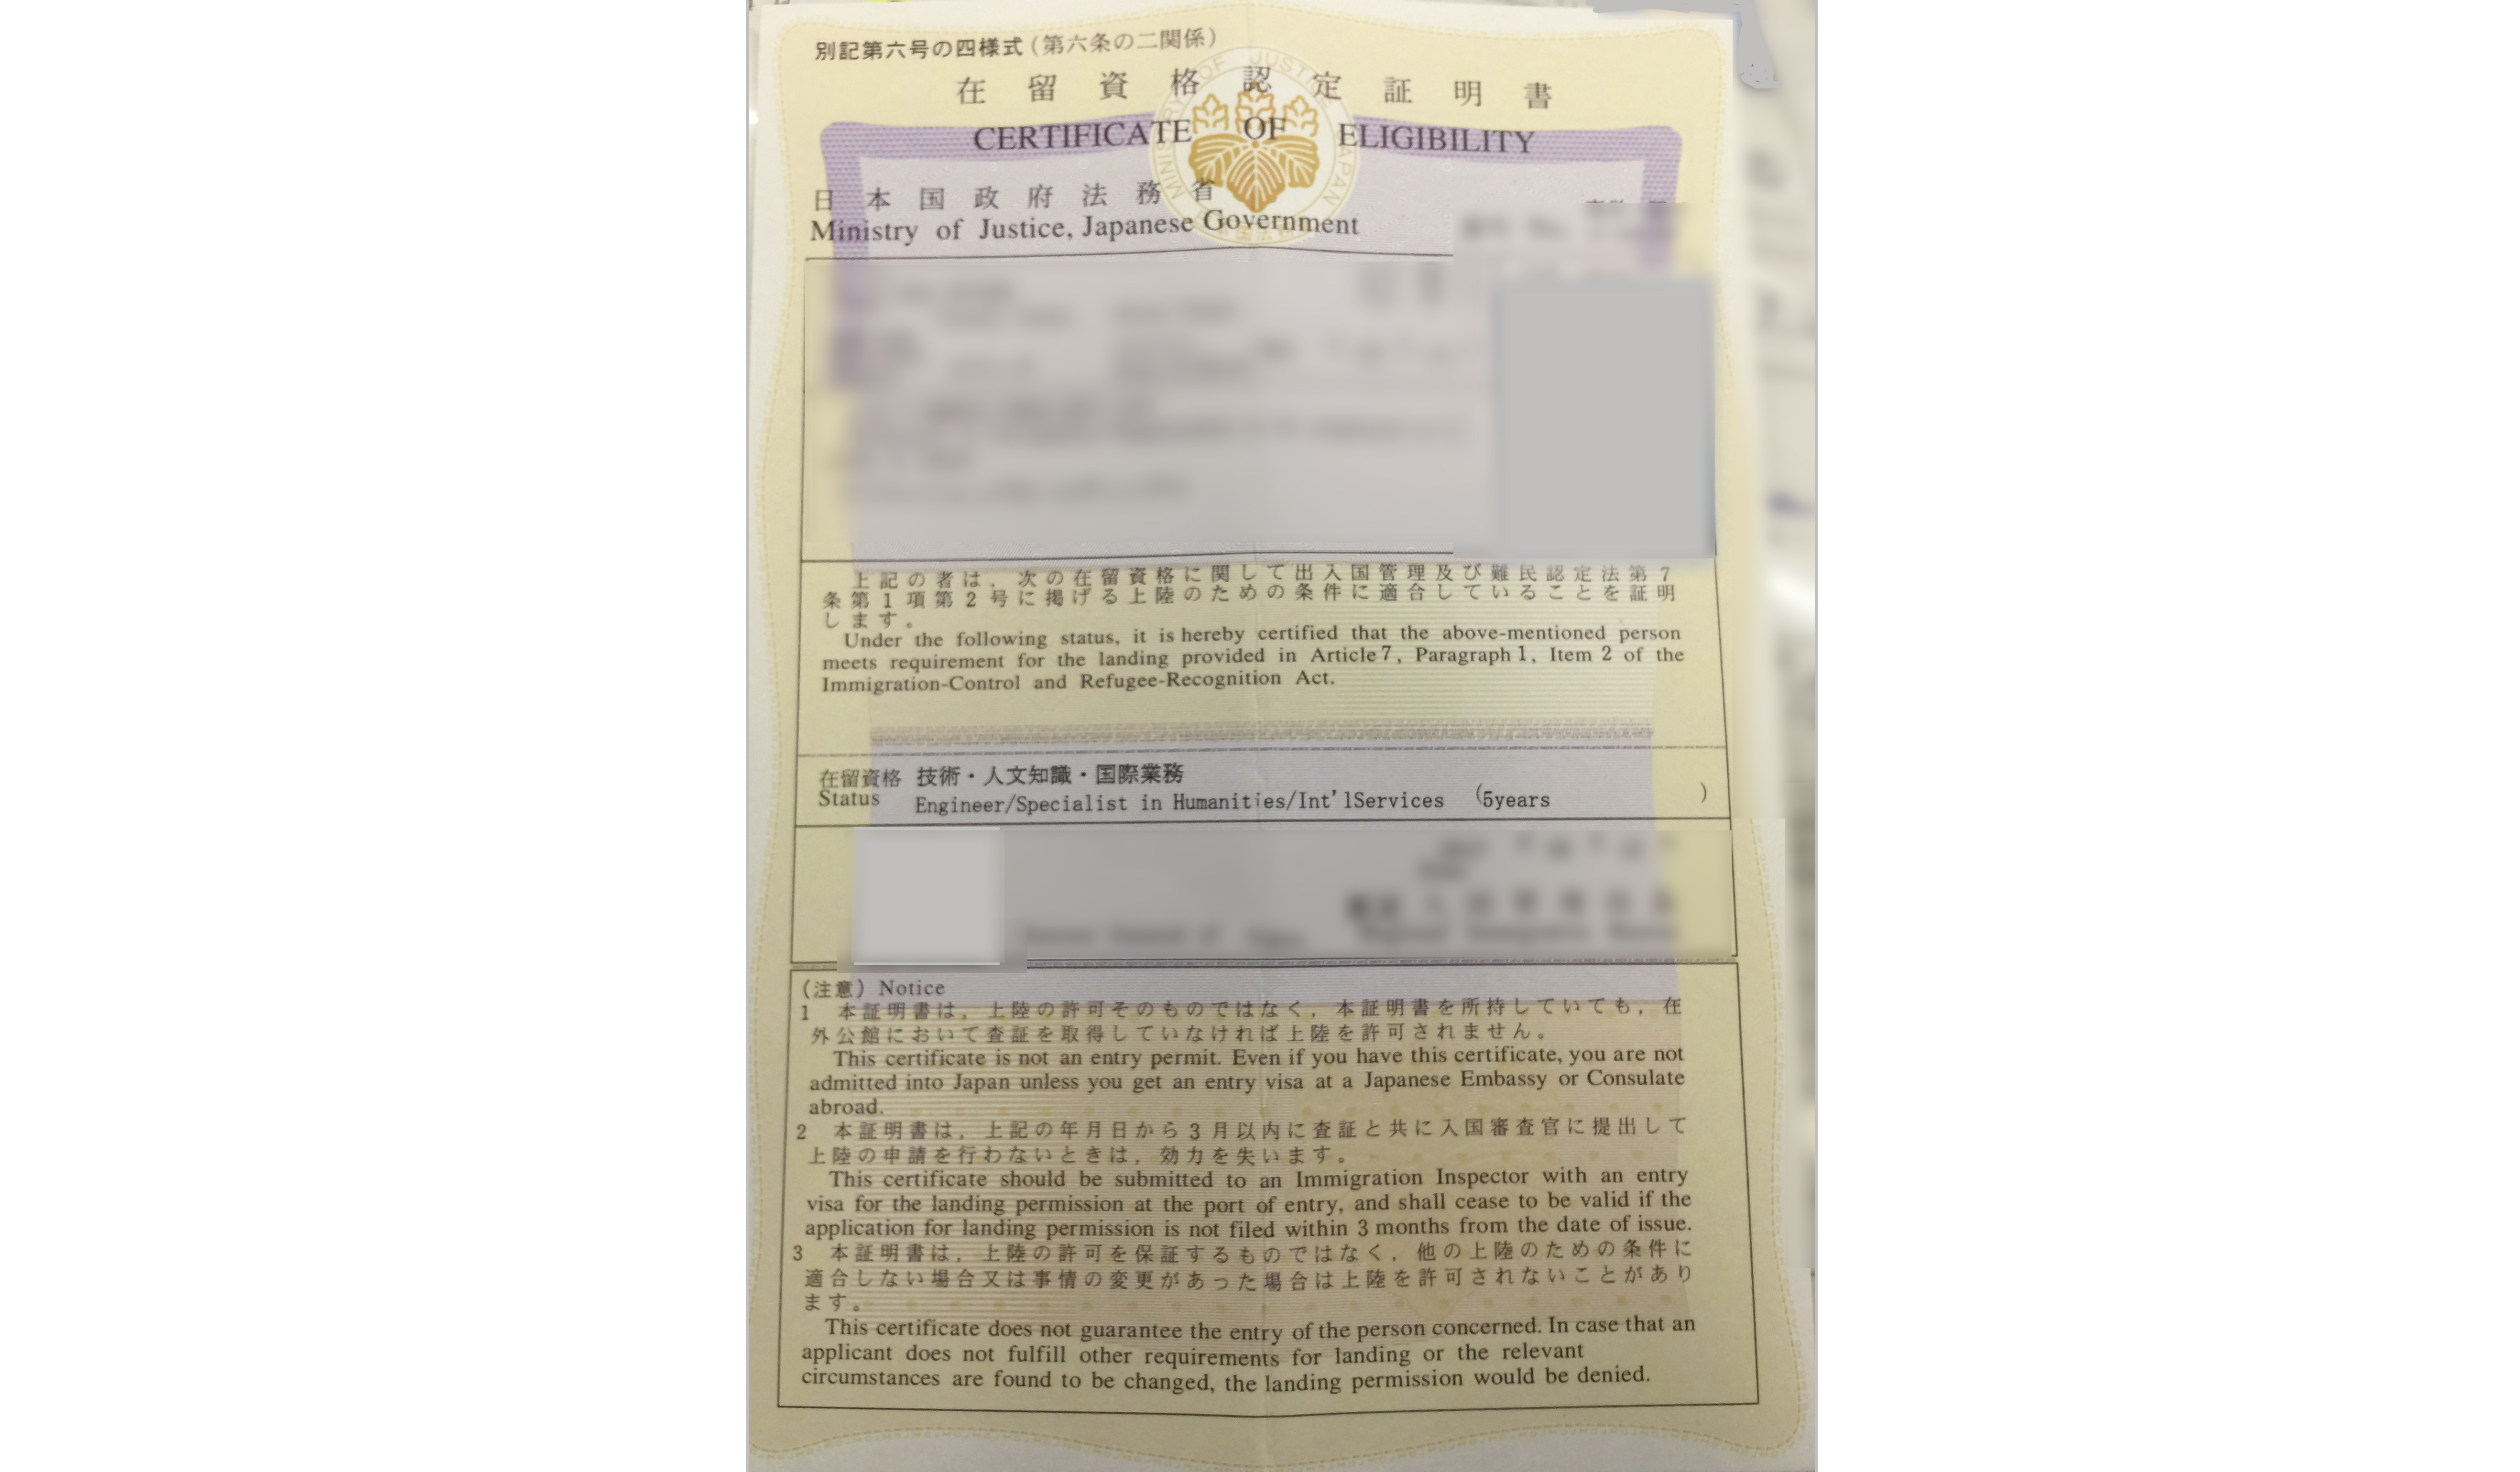 How to get a Certificate of Eligibility in Japan - shibajapan Application Form Certificate Of Eligibility Japan on certificate of sponsorship template, certificate of eligibility japan visa, ds-2019 form, certificate of eligibility va, bill of sale form, certificate of eligibility gi bill, certificate of eligibility for godparents,